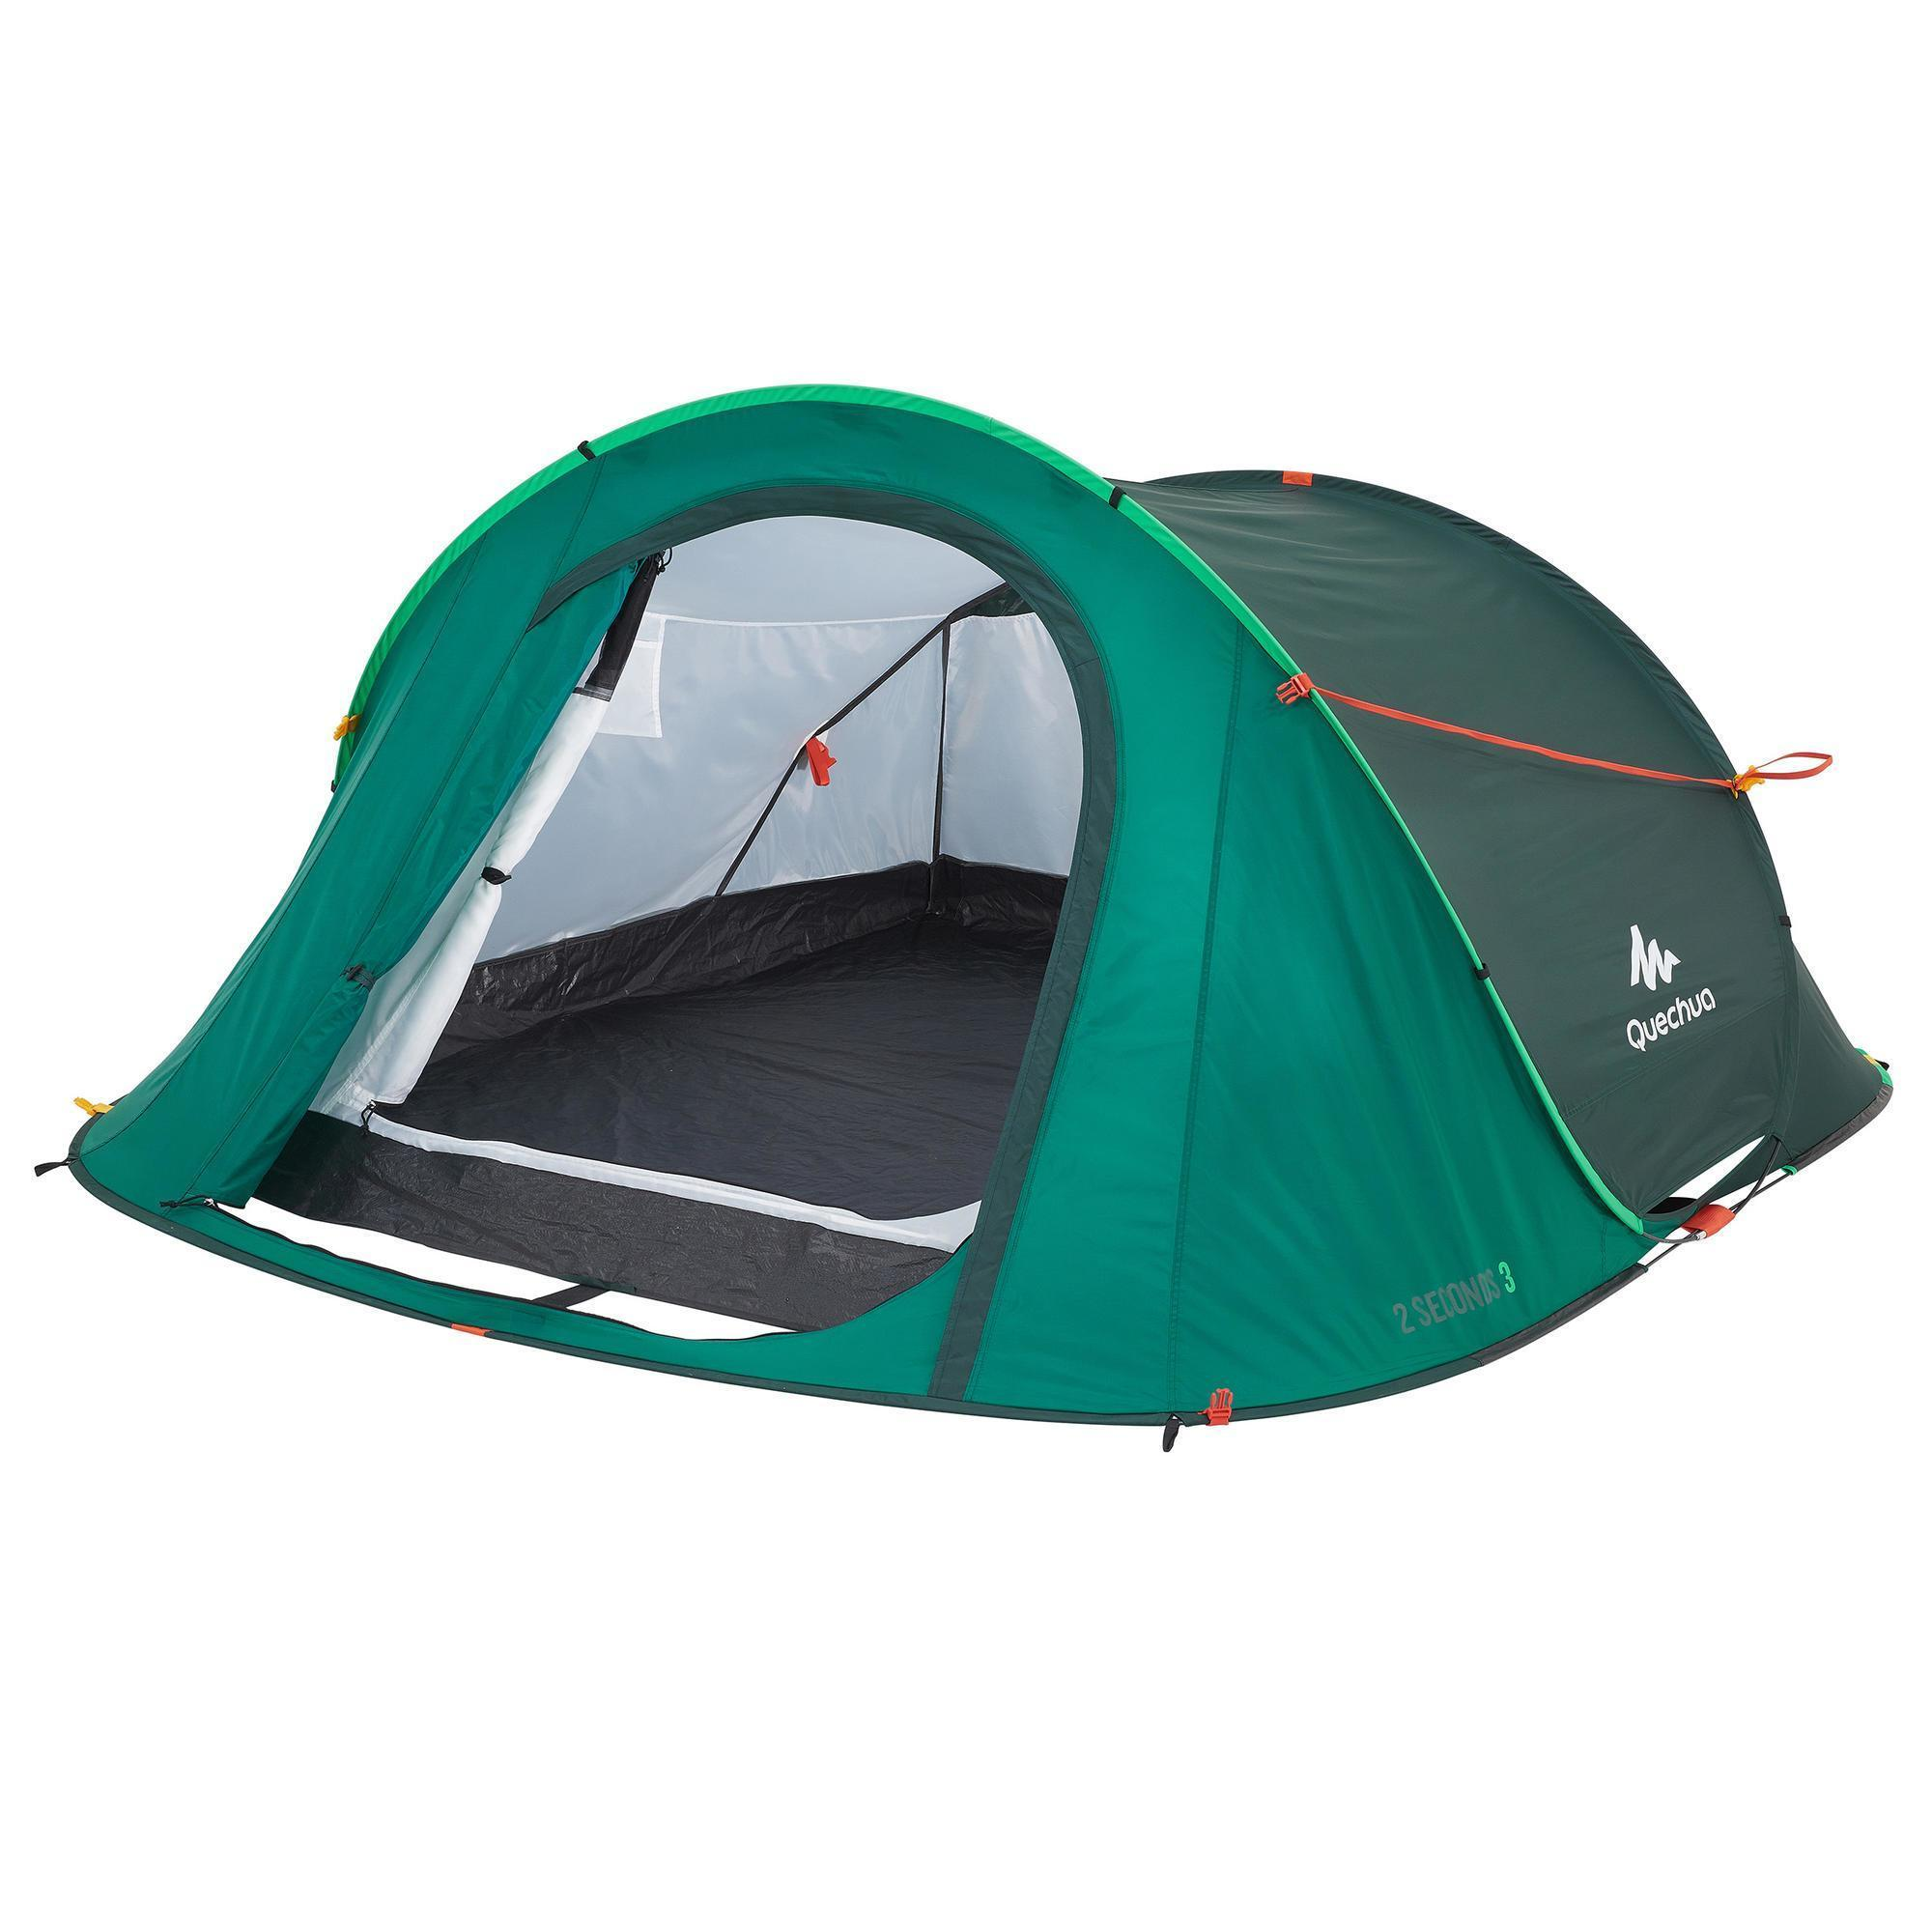 2 SECONDS 3-Man - Green  sc 1 st  Quechua & Camping tents for 1 to 3 people | Quechua